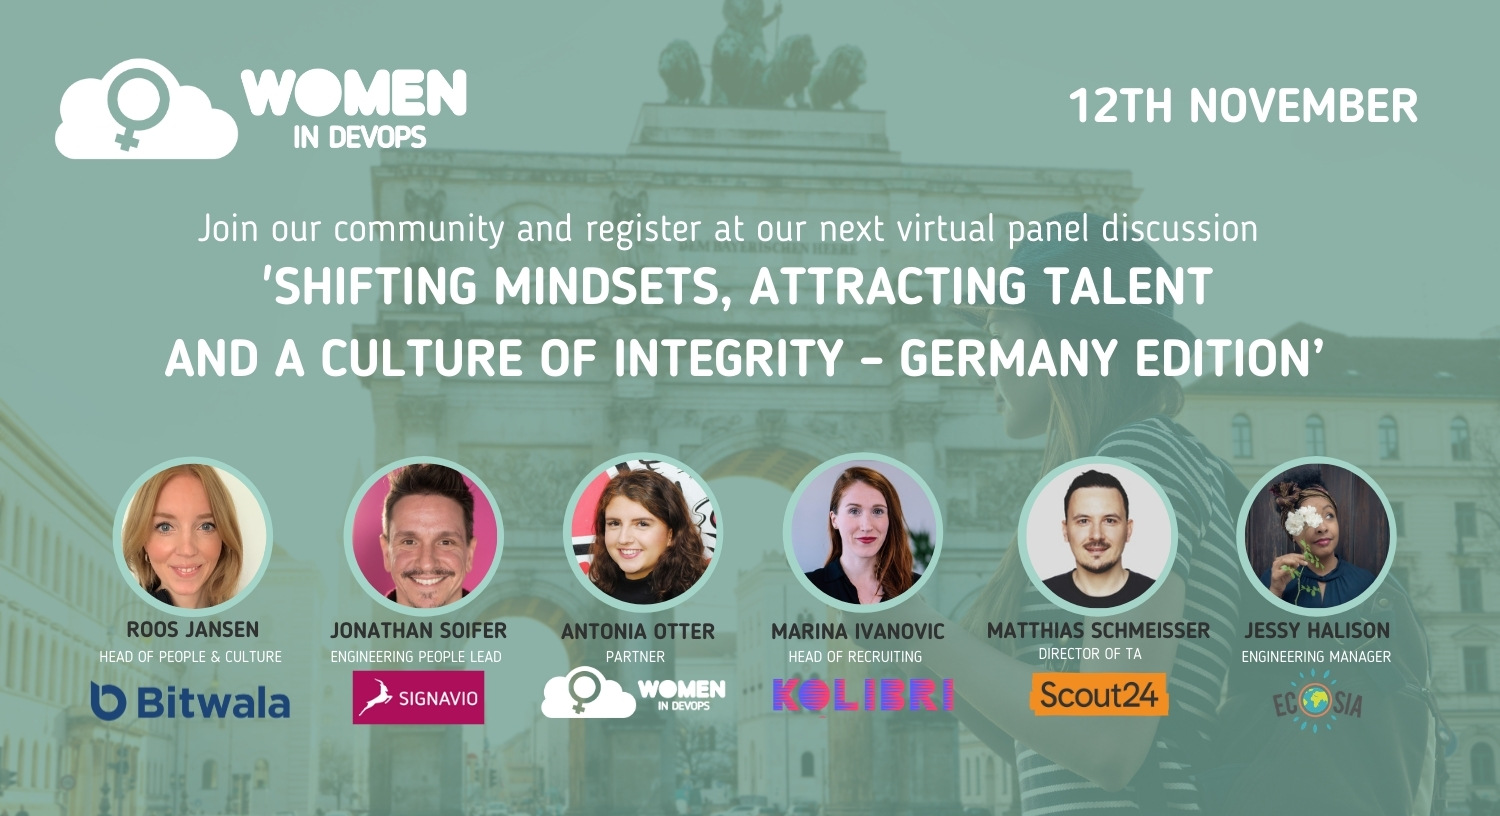 Webinar #8 - 'Shifting Mindsets, Attracting Talent and a Culture of Integrity'